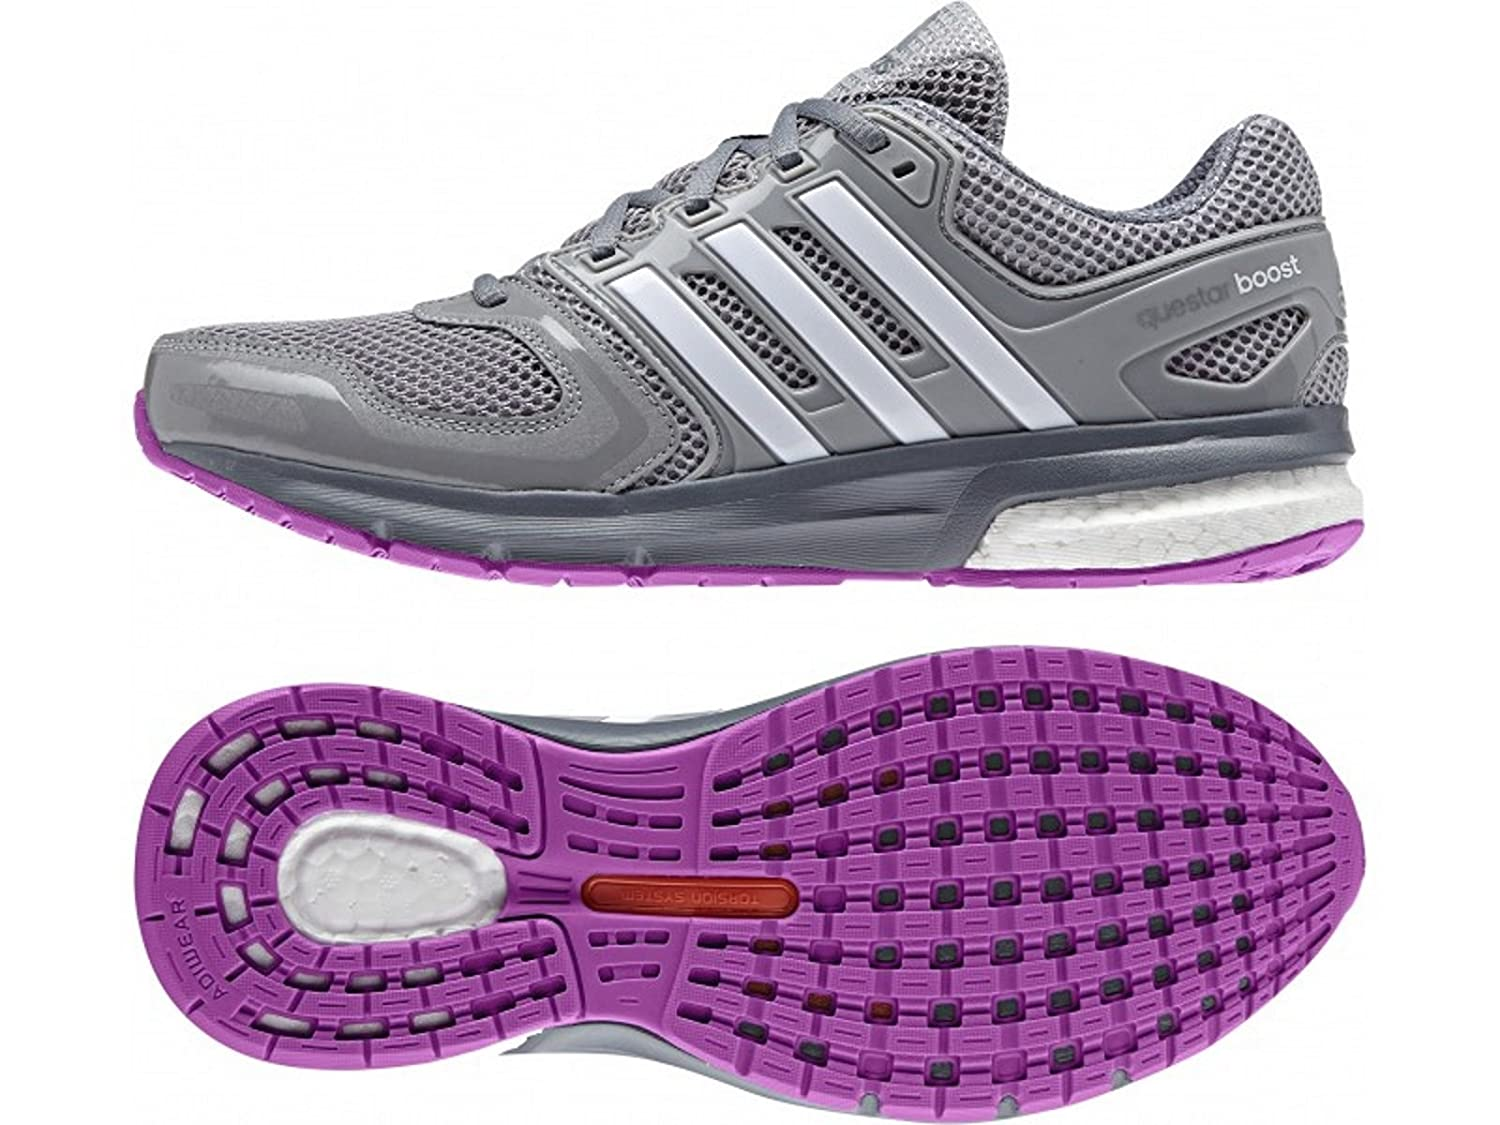 half off 048e9 11177 Adidas Questar Boost Ladies Womens Running Shoes  Amazon.co.uk  Sports    Outdoors